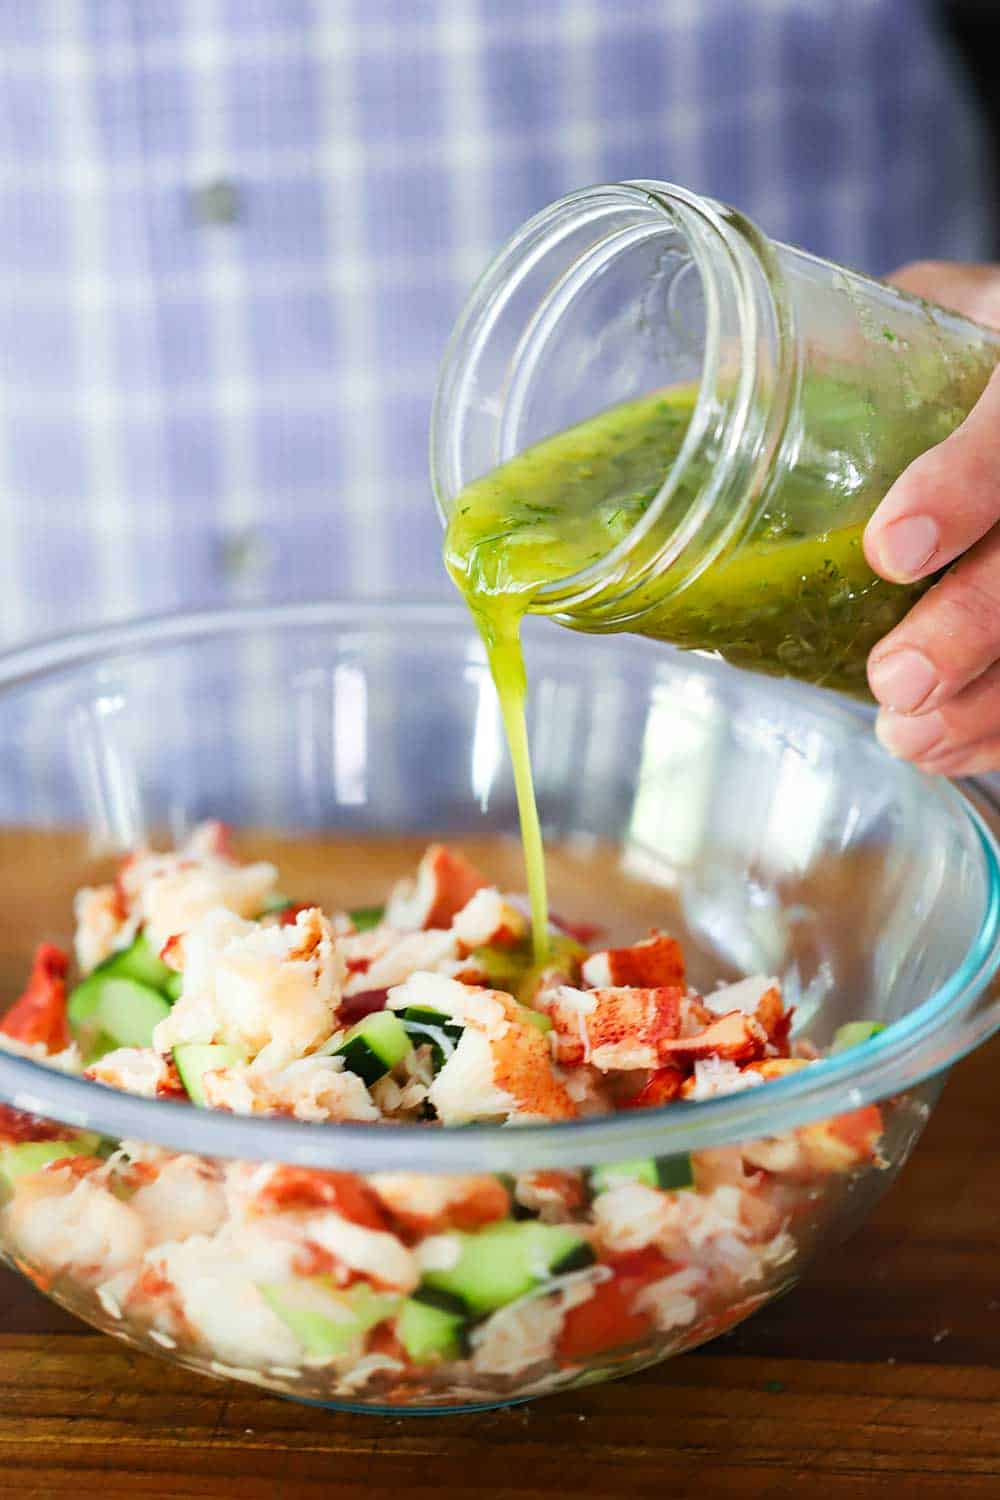 A person pouring a lemon vinaigrette from a mason jar into a glass bowl filled with chopped fresh lobster and cucumbers.